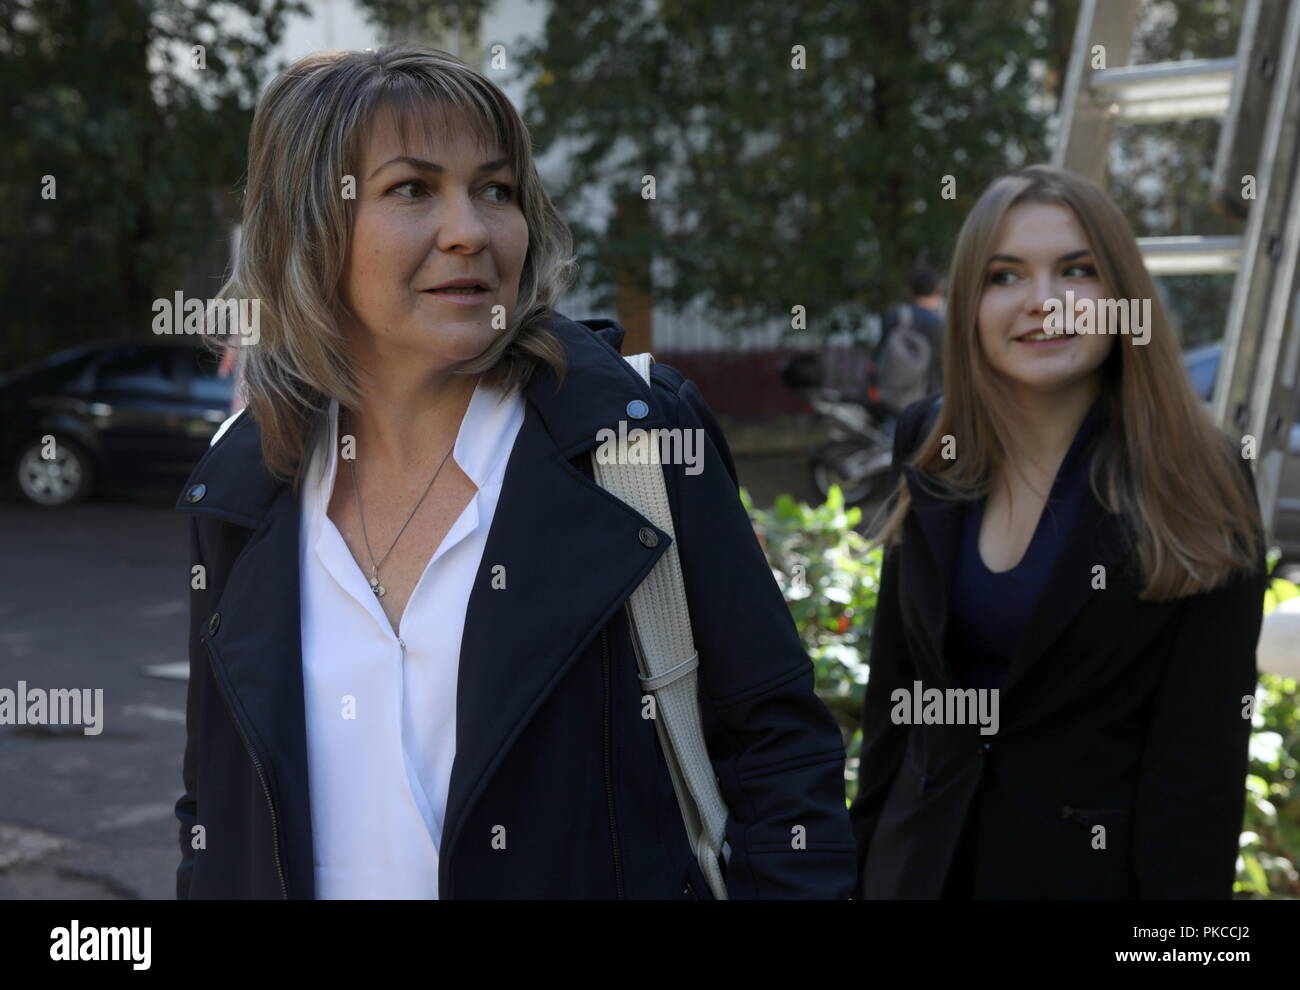 Wife of Anton Makarsky told about her burden to alcohol 17.05.2013 26